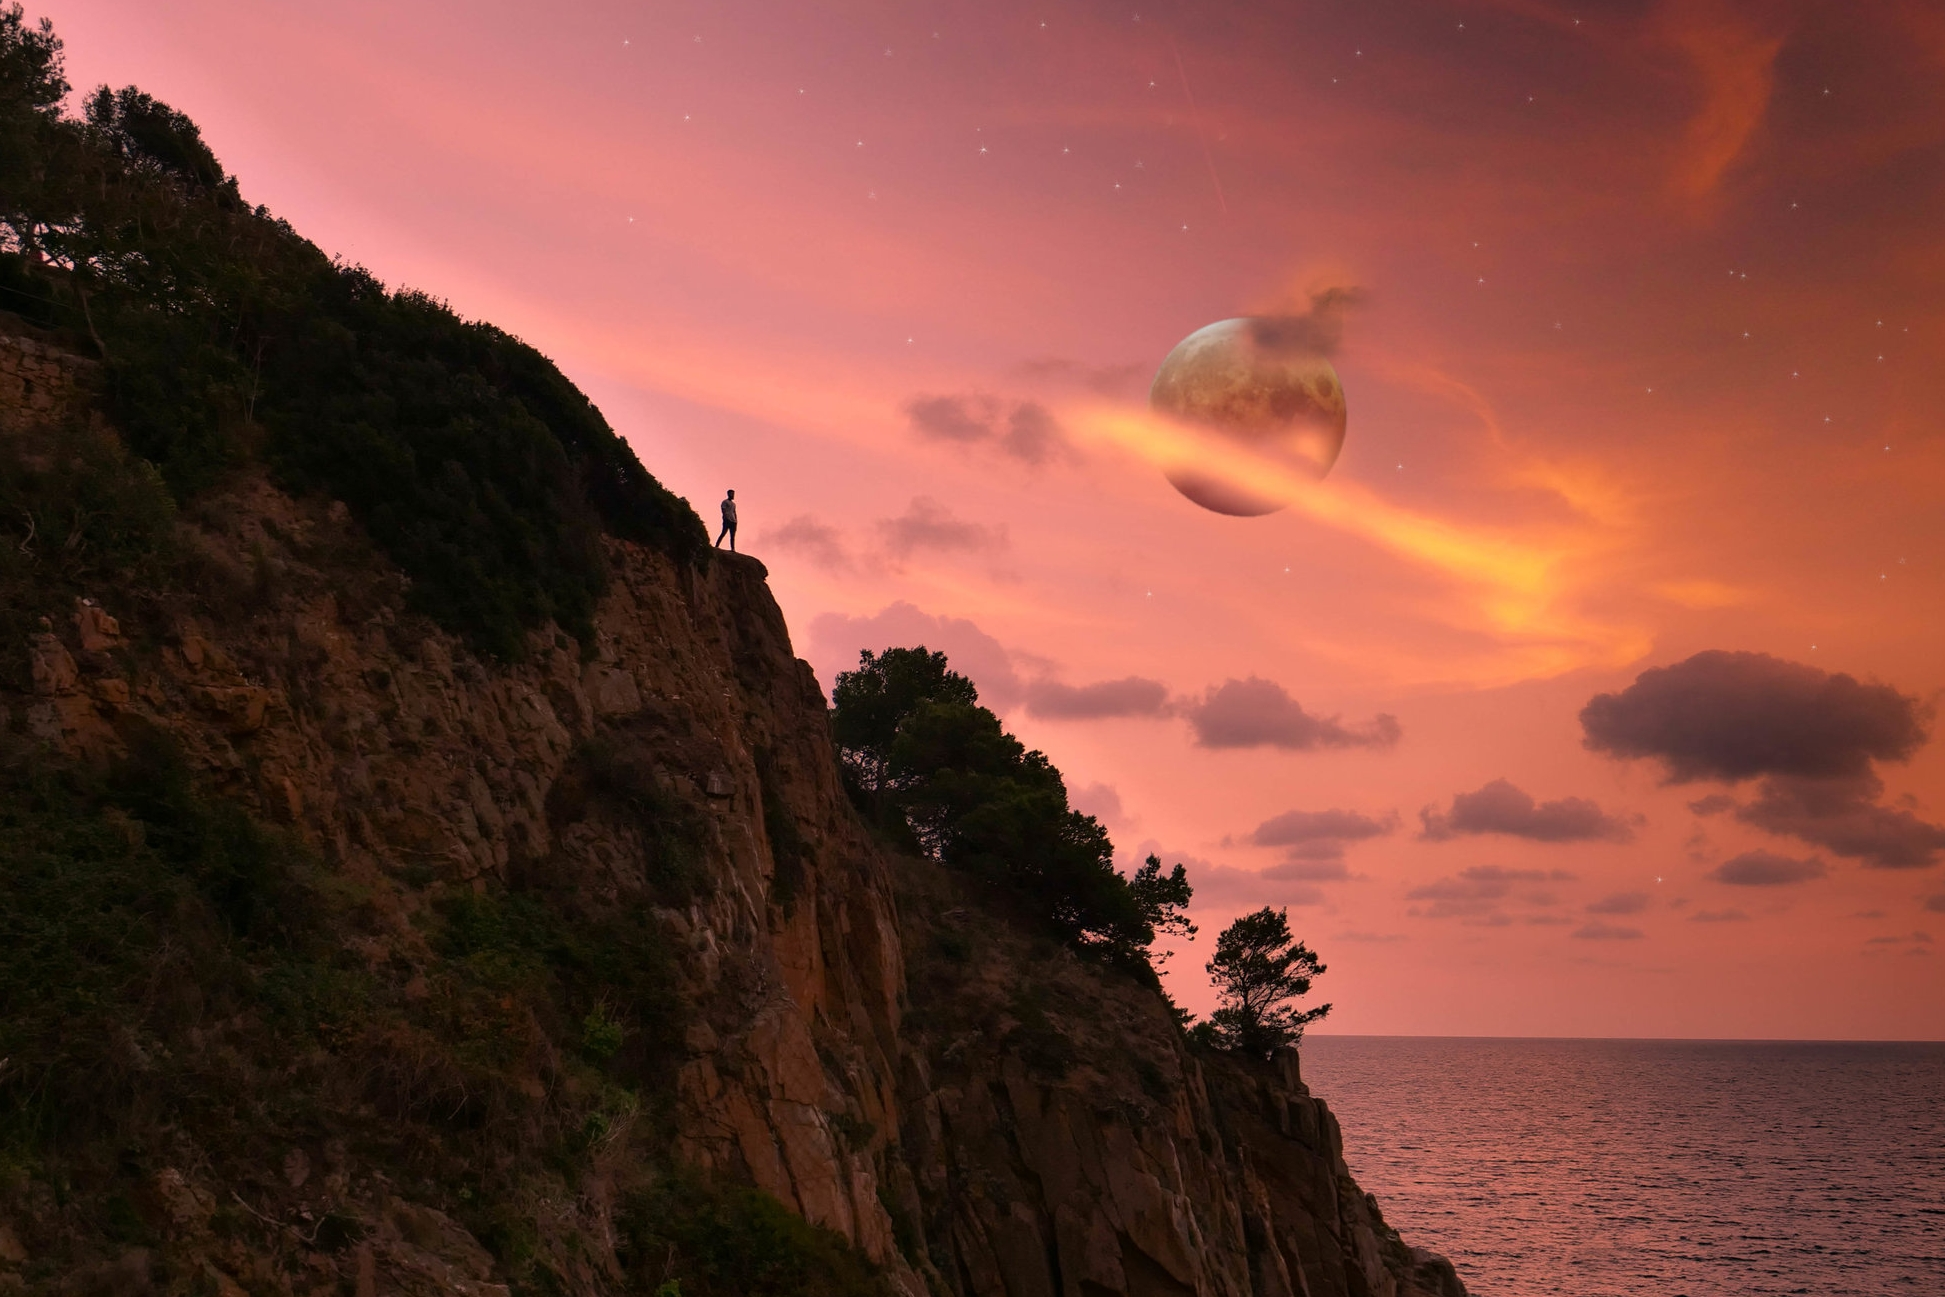 #nofilter image from secret spot in Tossa de Mar. Zero editing done, straight out of the camera :)